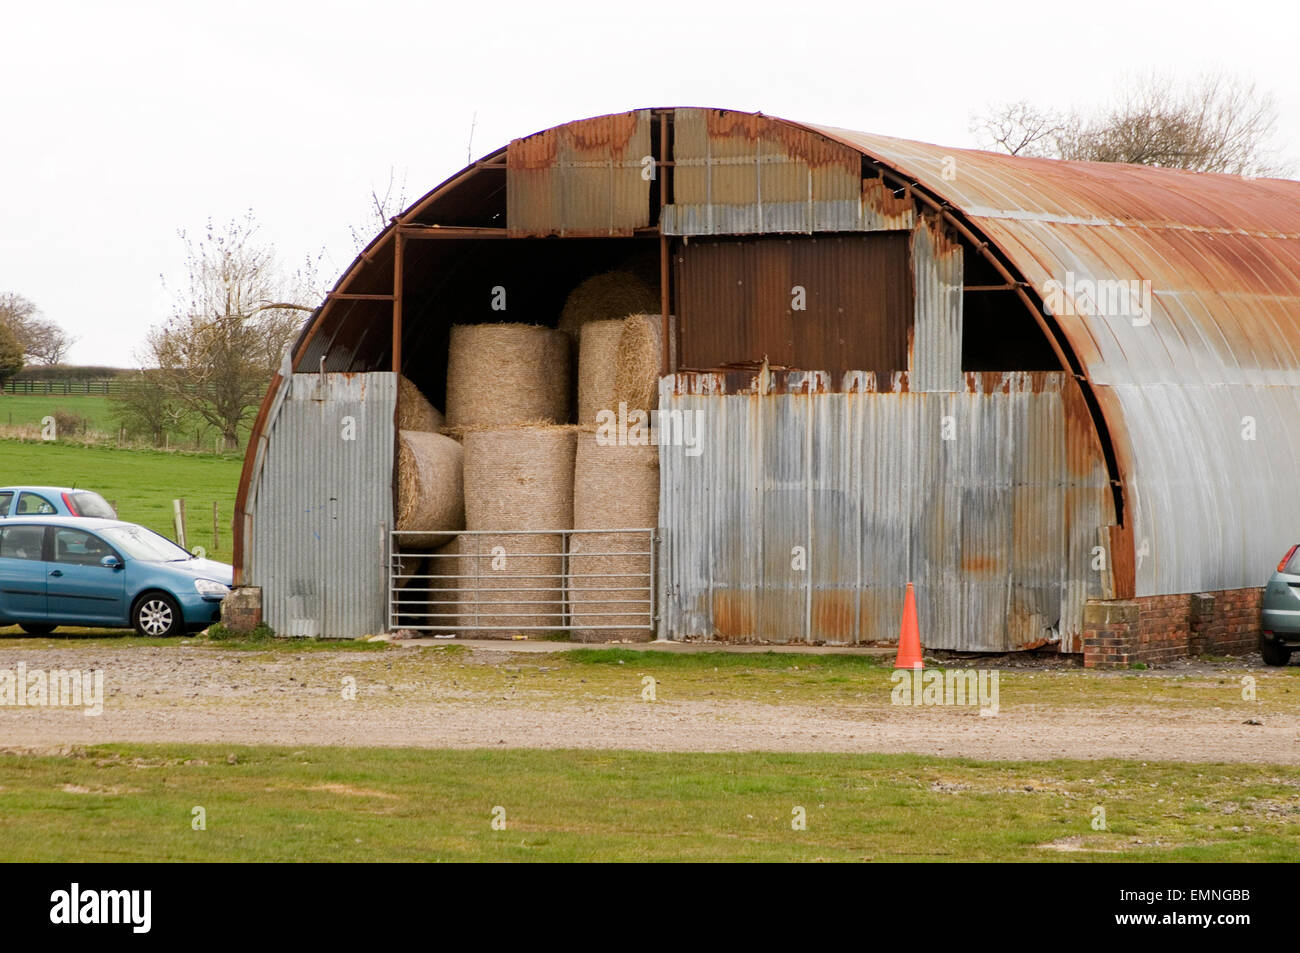 Anderson shelter air raid raids shelters temporary world war 2 two building building corrugated iron sheet sheets - Stock Image